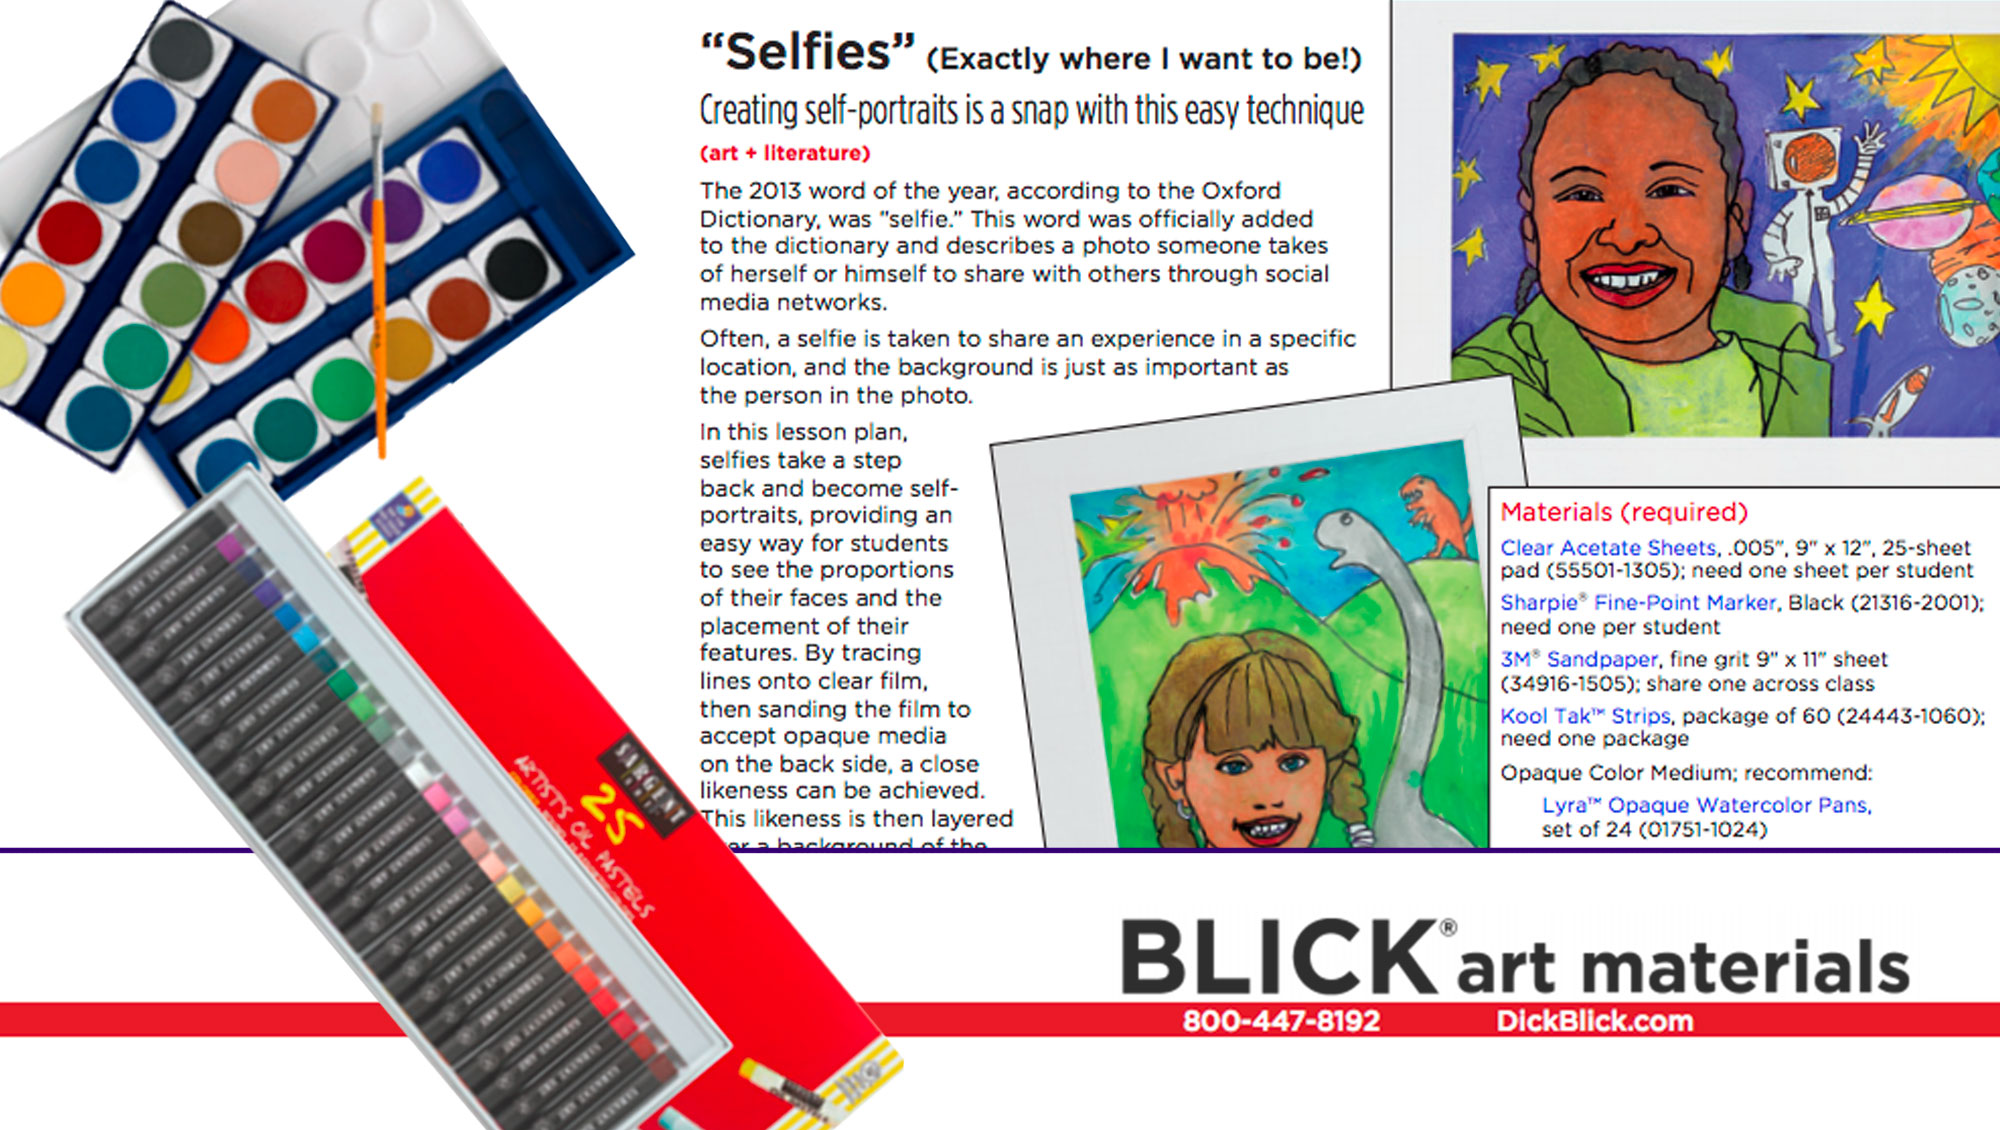 Selfies Art Project from Blick